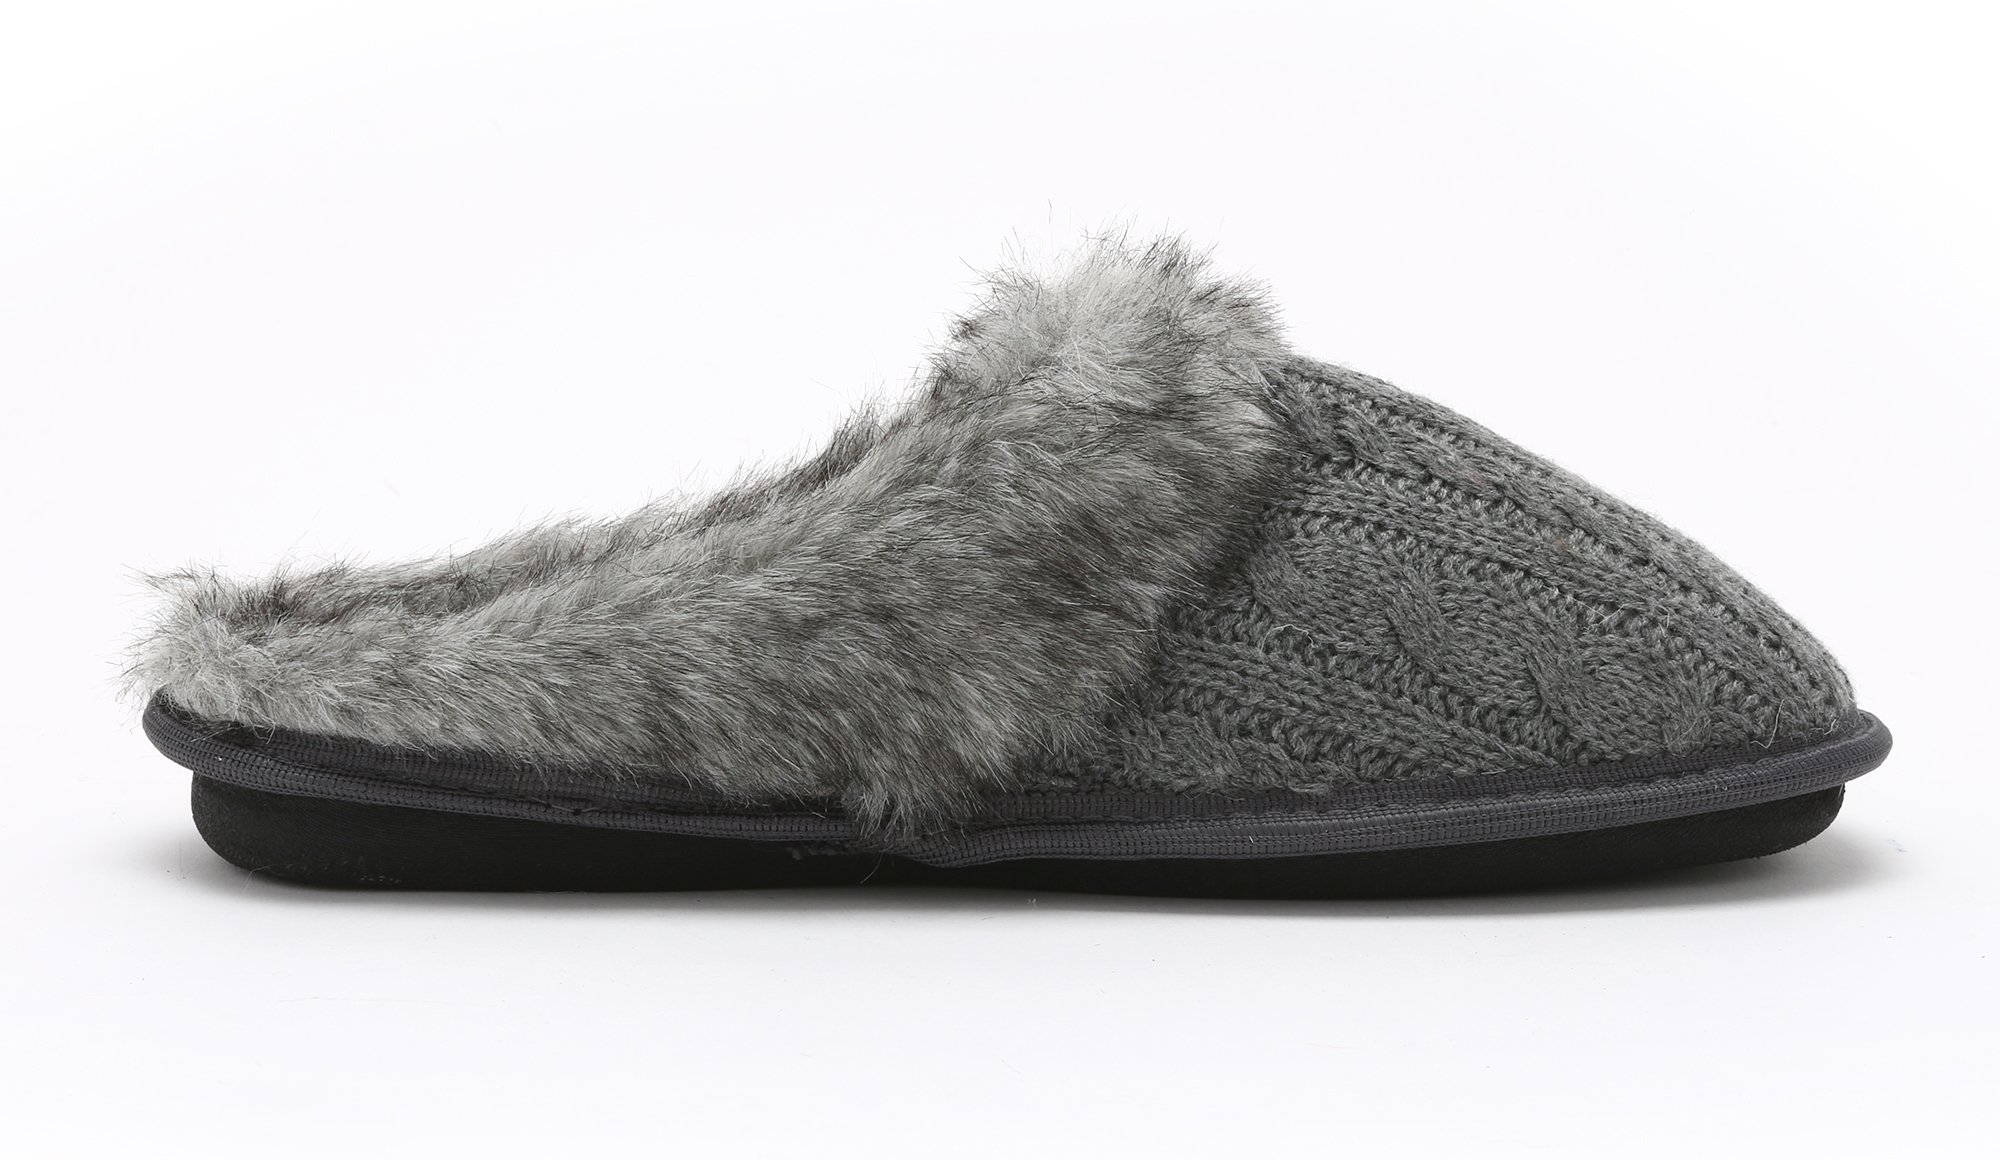 Pembrook Ladies Faux Fur + Cable Knit Slippers – Gray, Large - Comfortable Memory Foam Indoor and Outdoor Non-Skid Sole - Great Plush Slip on House Shoes for adults, women, girls by Pembrook (Image #6)